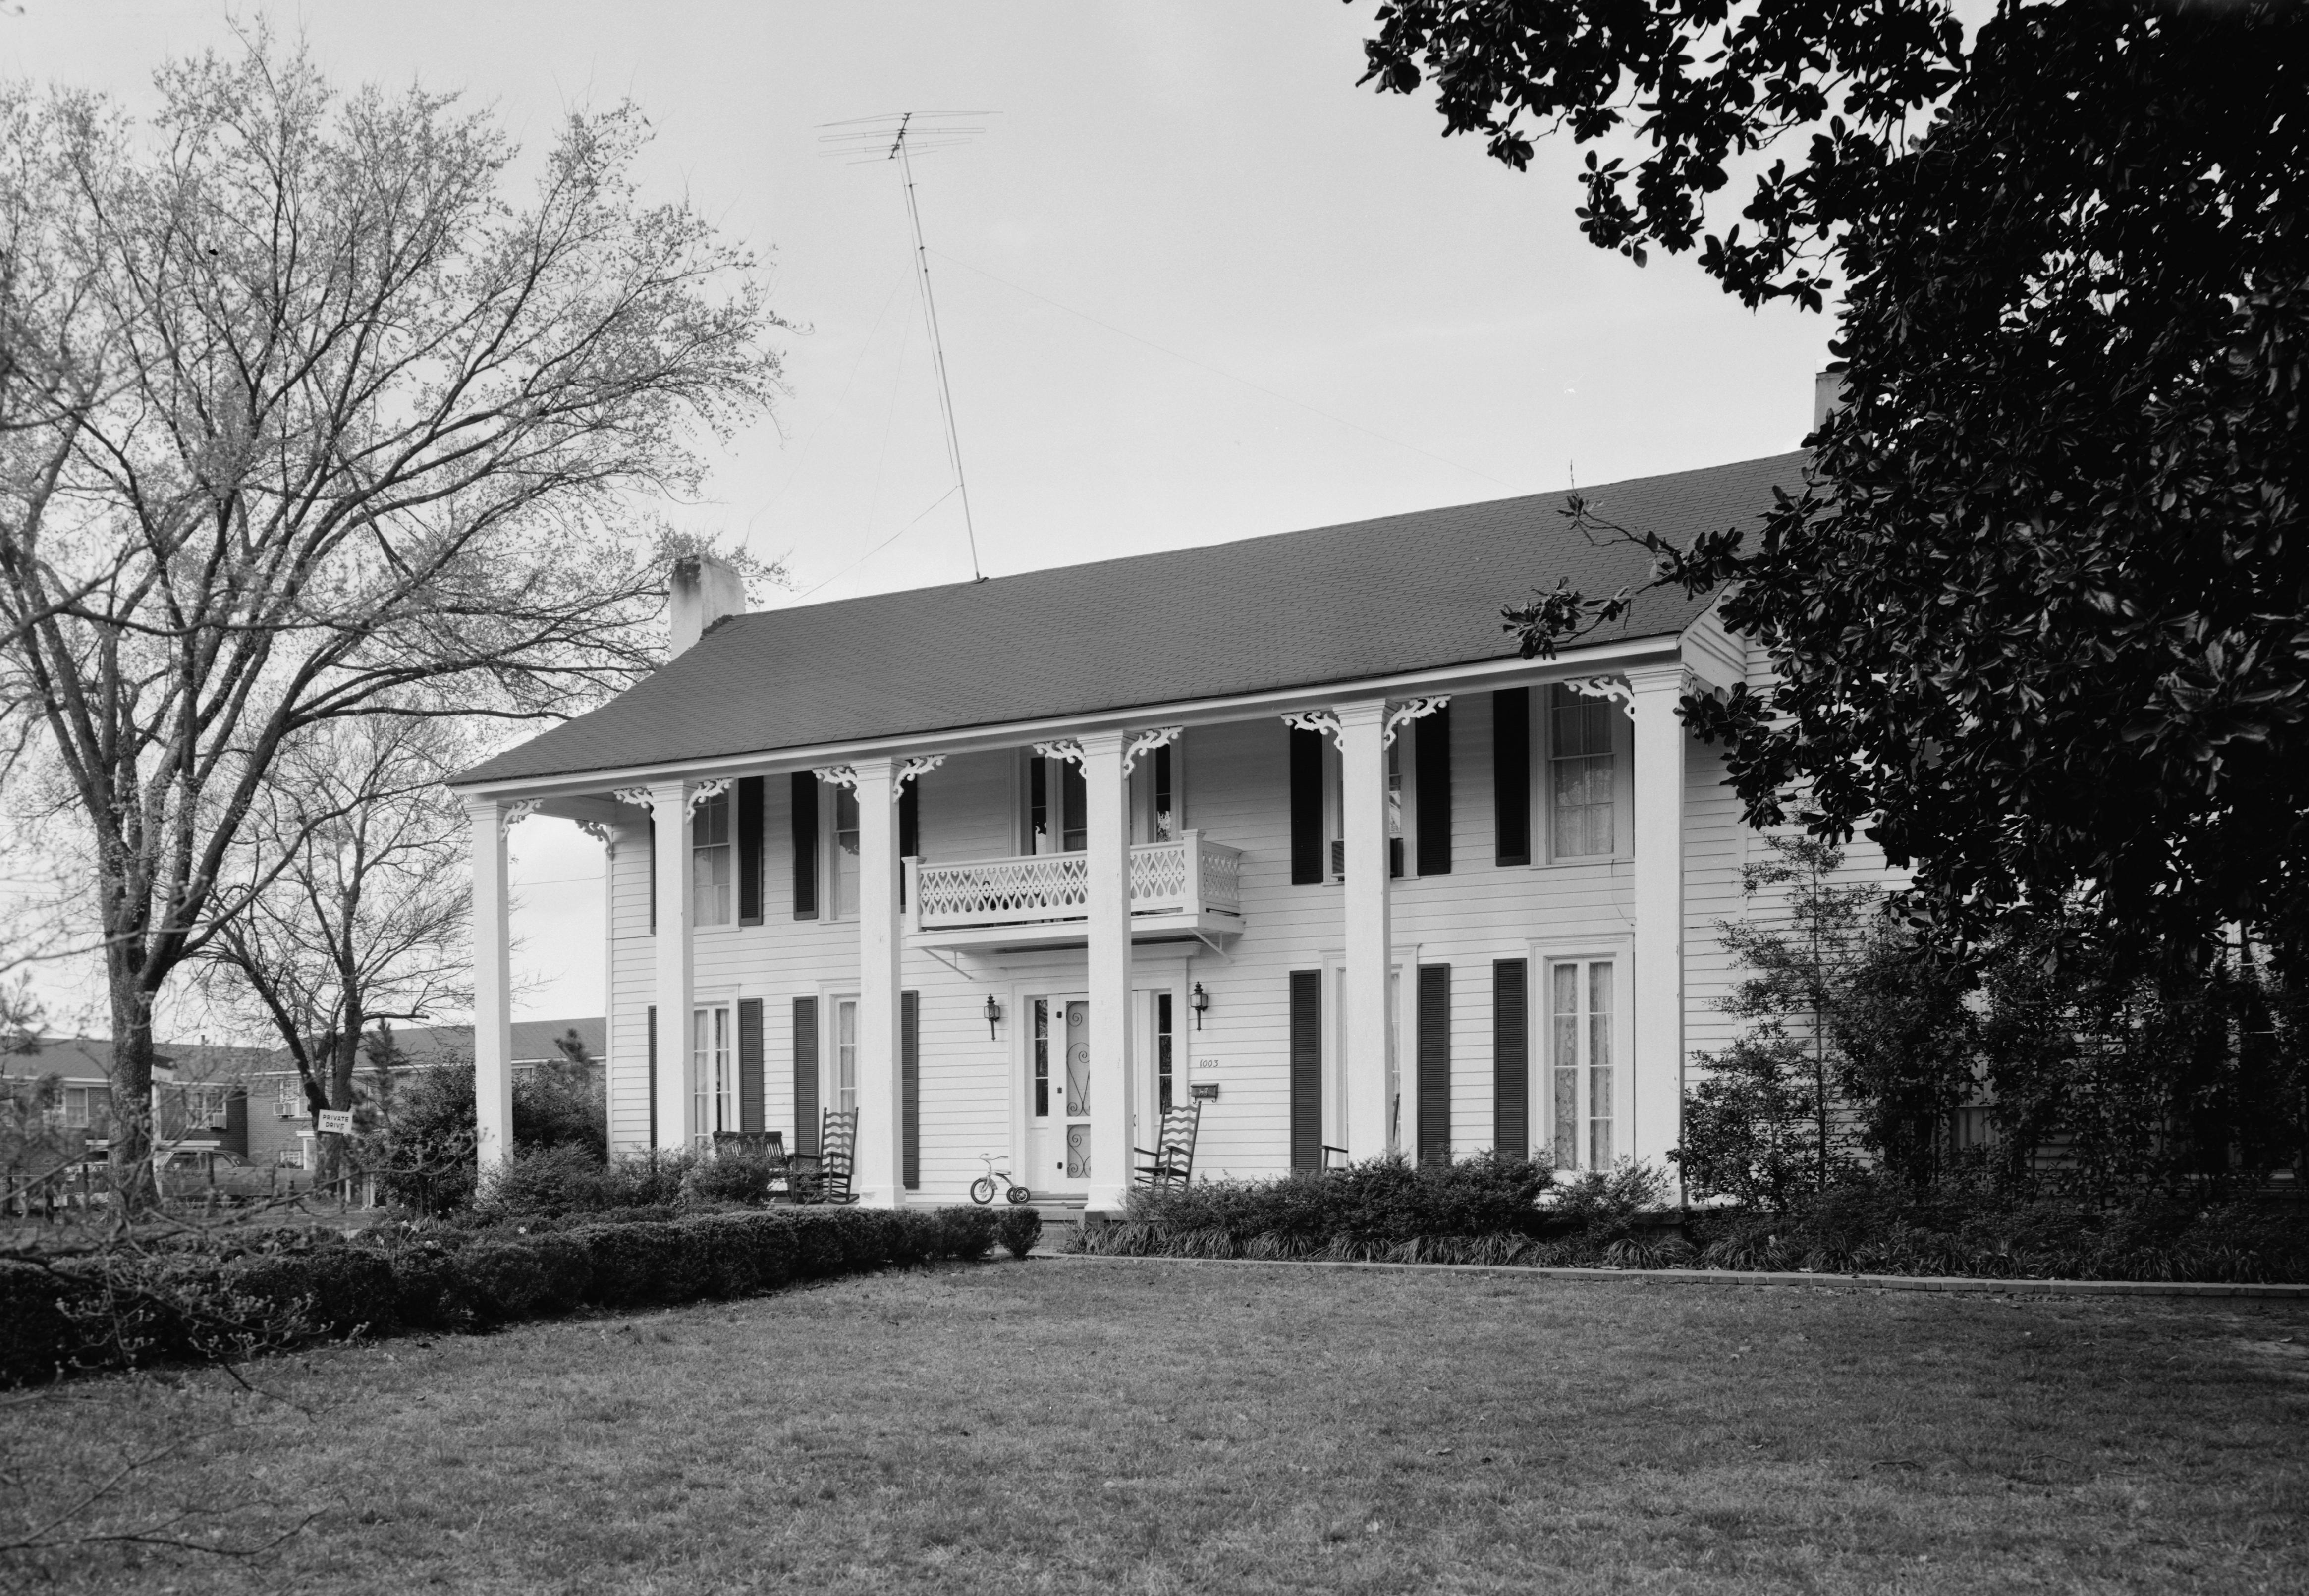 Isom Place was built in the 1840s and today serves as the home of the Barksdale Reading Institute.